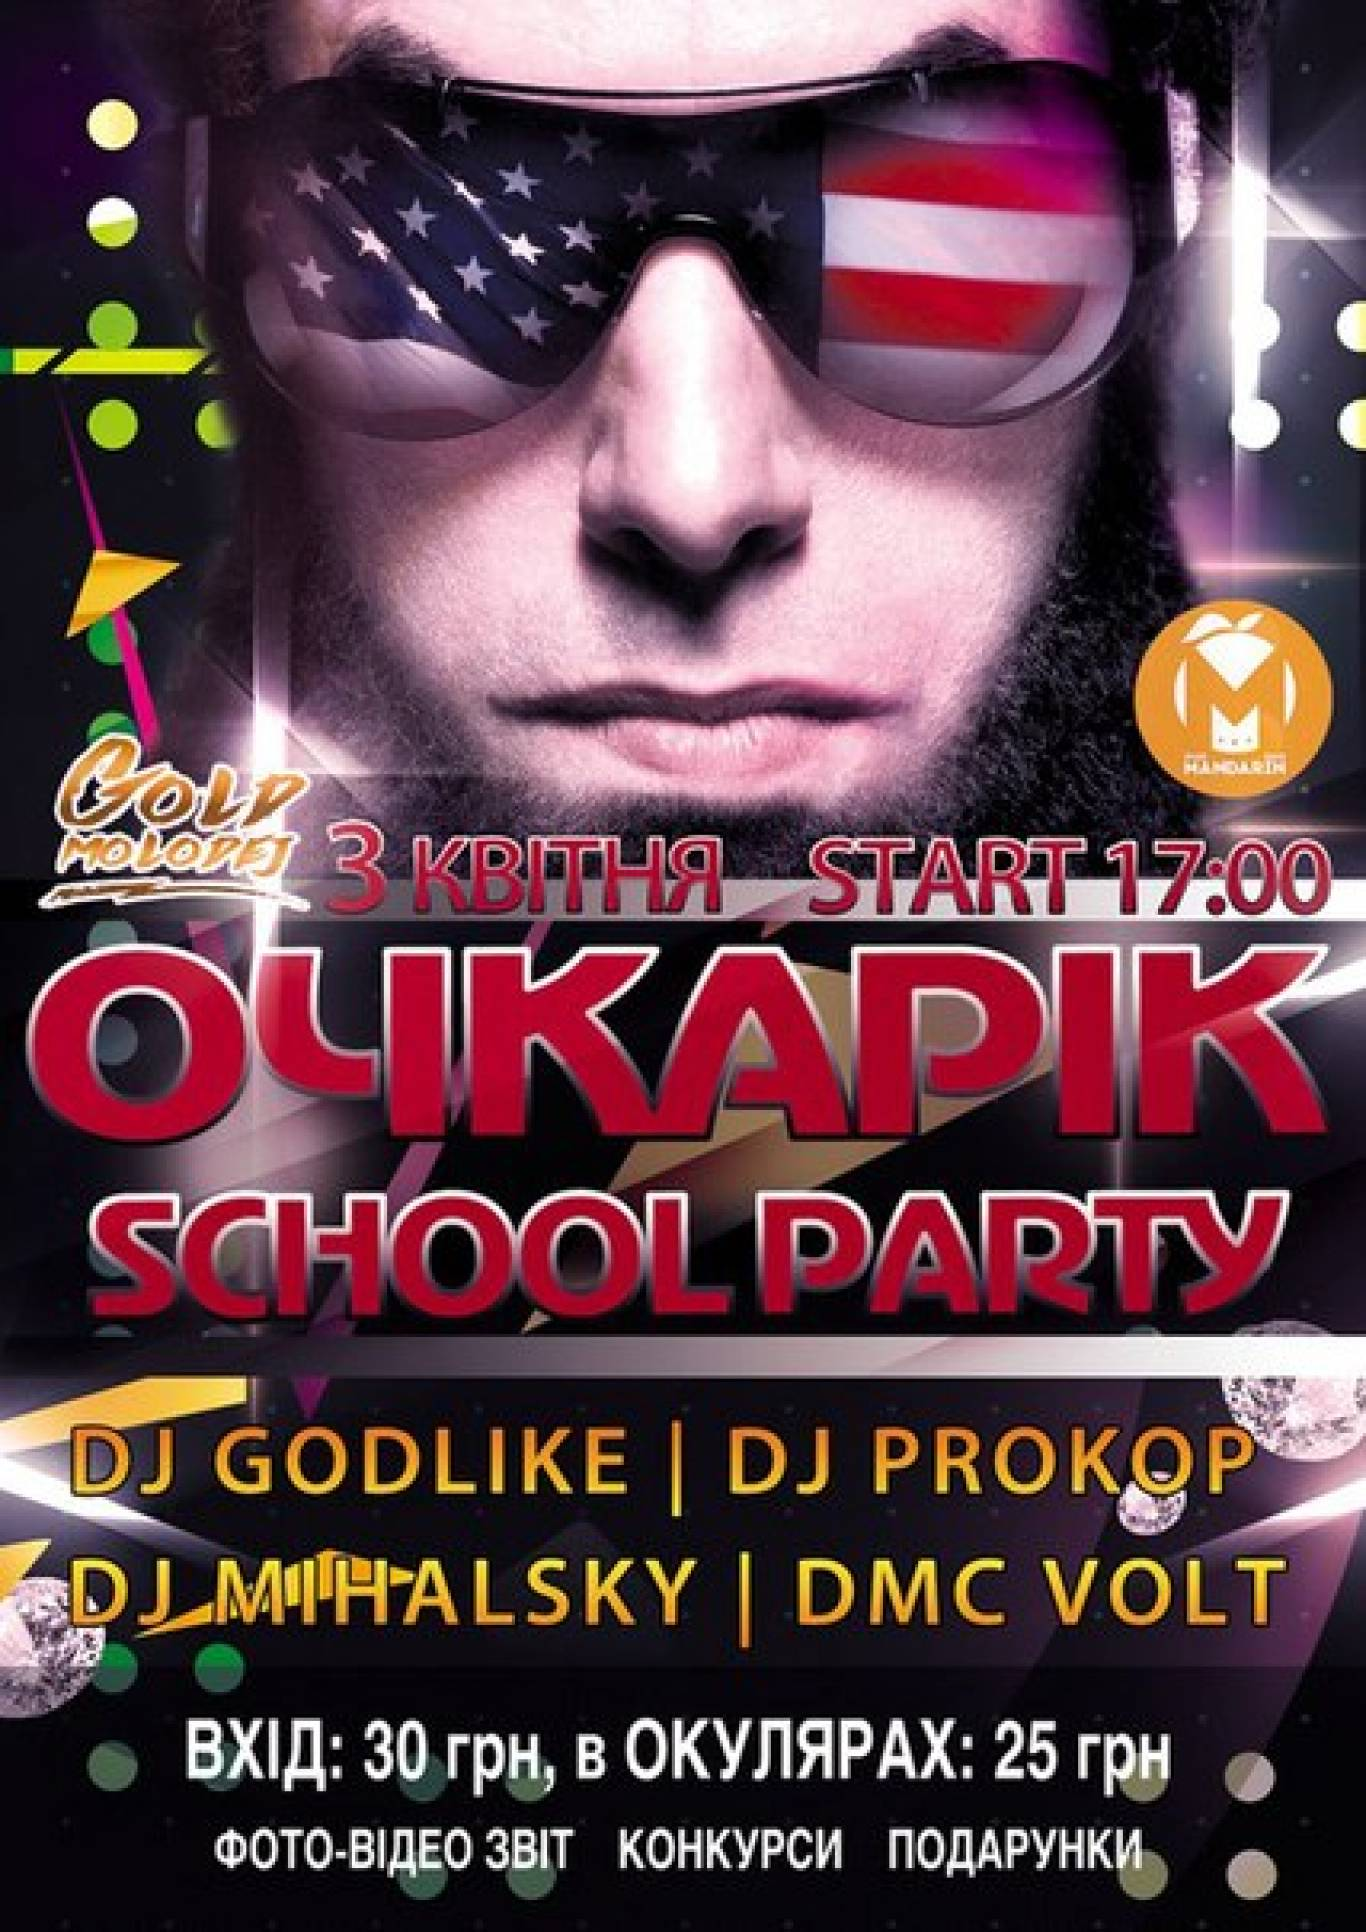 Очкарик Scool Party